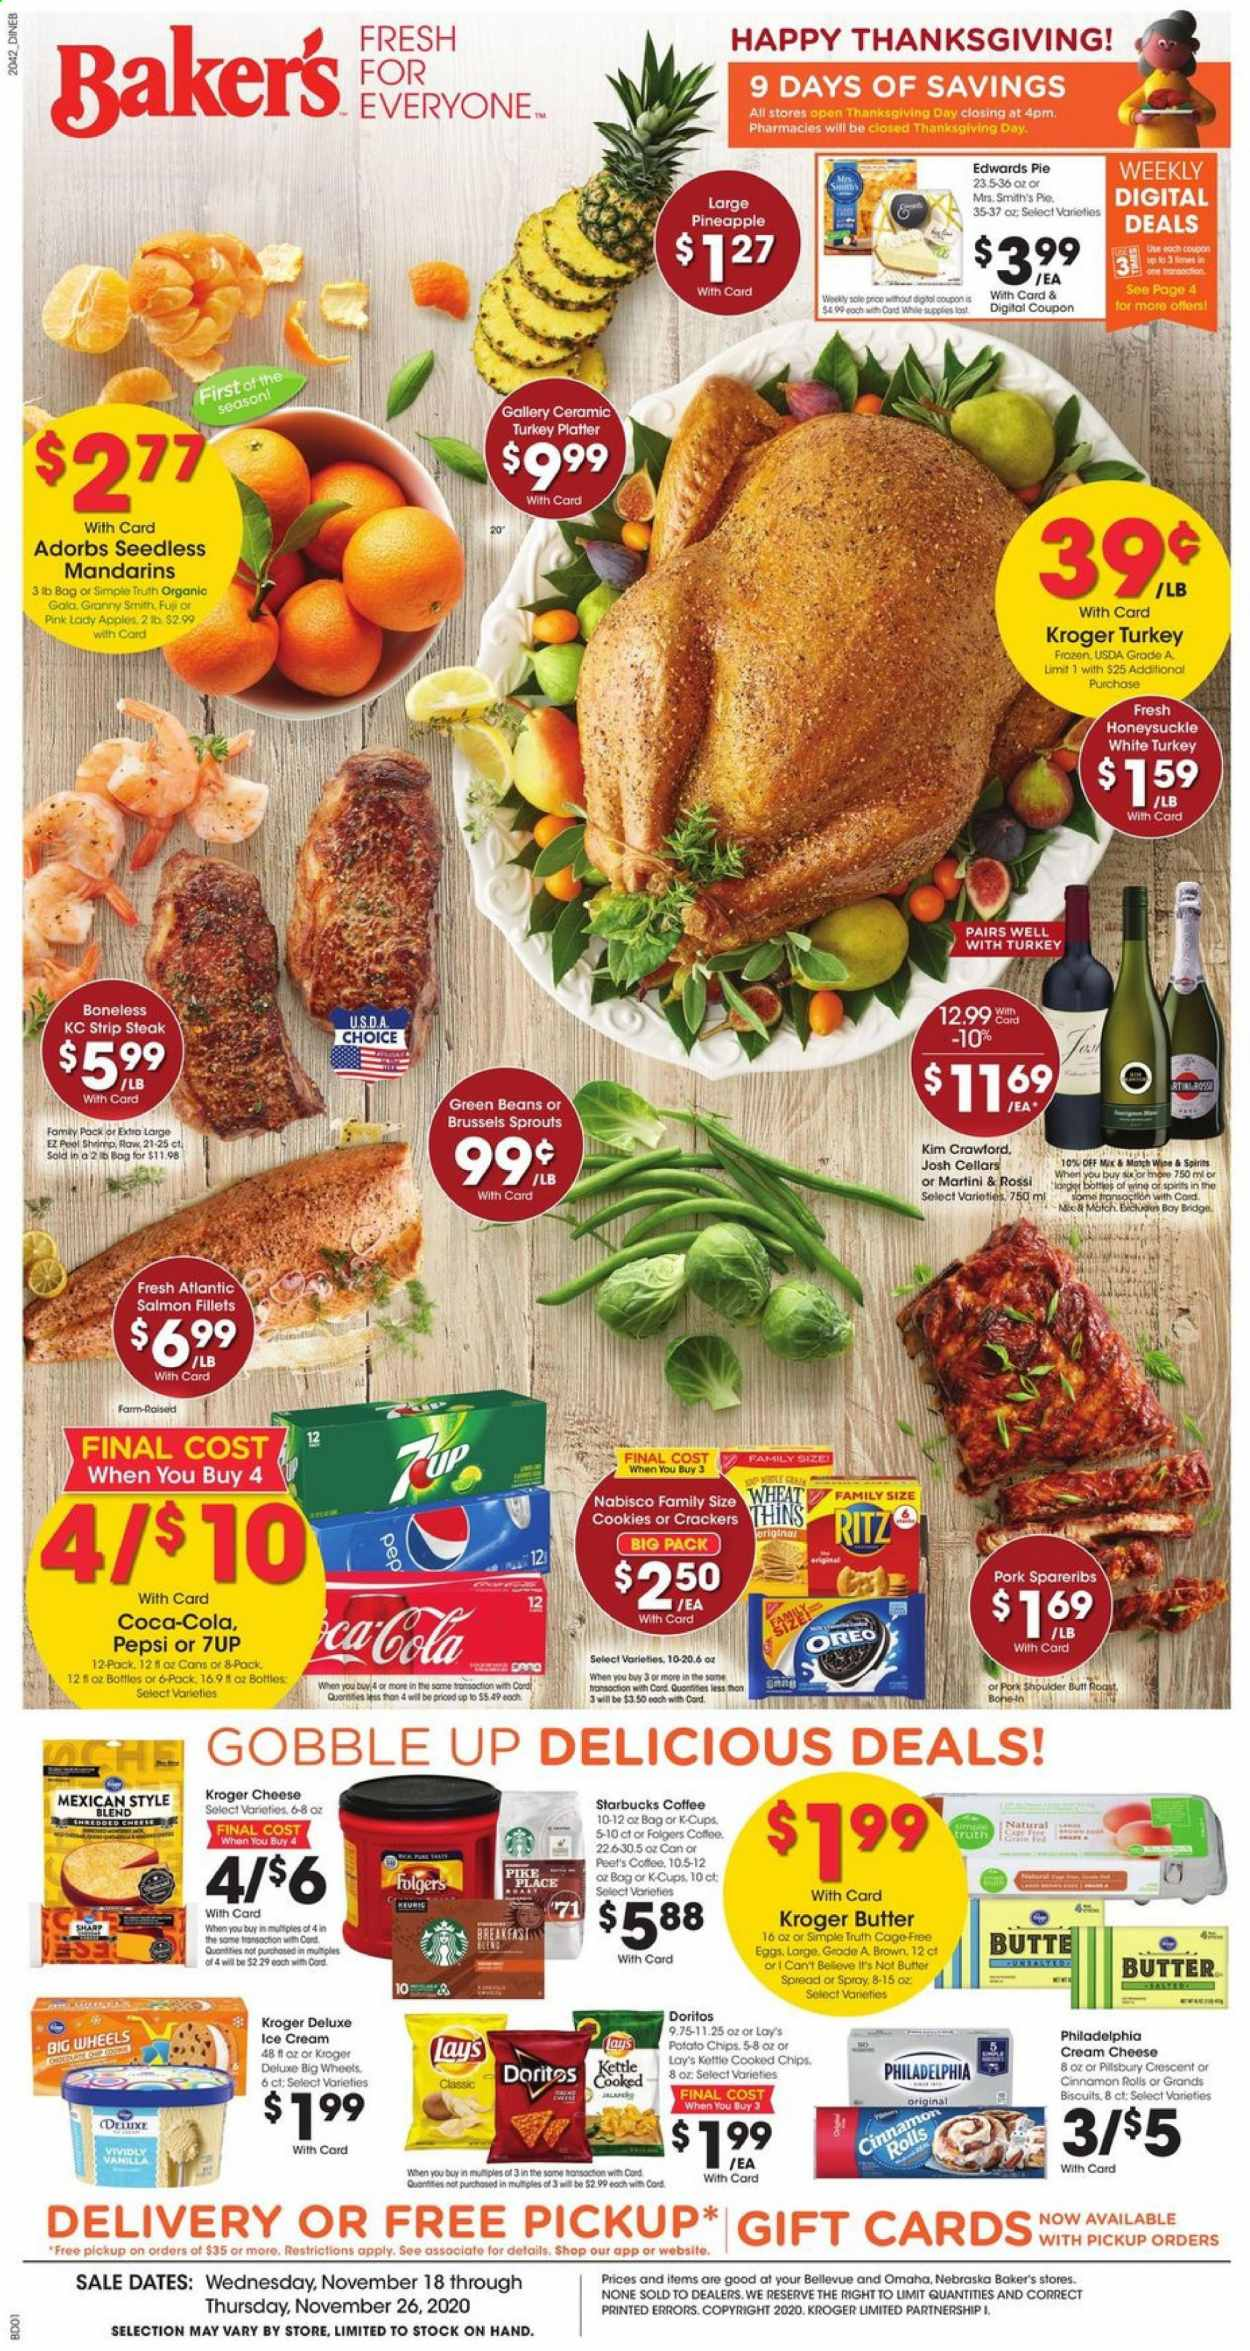 Baker's Flyer - 11.18.2020 - 11.26.2020 - Sales products - apples, beans, biscuits, brussels sprouts, butter, cap, cinnamon rolls, Coca-Cola, coffee, cookies, cream cheese, Doritos, eggs, frozen, green beans, salmon, Sharp, starbucks, turkey, ice cream, philadelphia, pike, pineapple, pork meat, pork shoulder, potato chips, Pepsi, Oreo, chips, steak, cheese, pie, Lay's, wine, platter, Folgers, Apple, shrimps, kettle. Page 1.